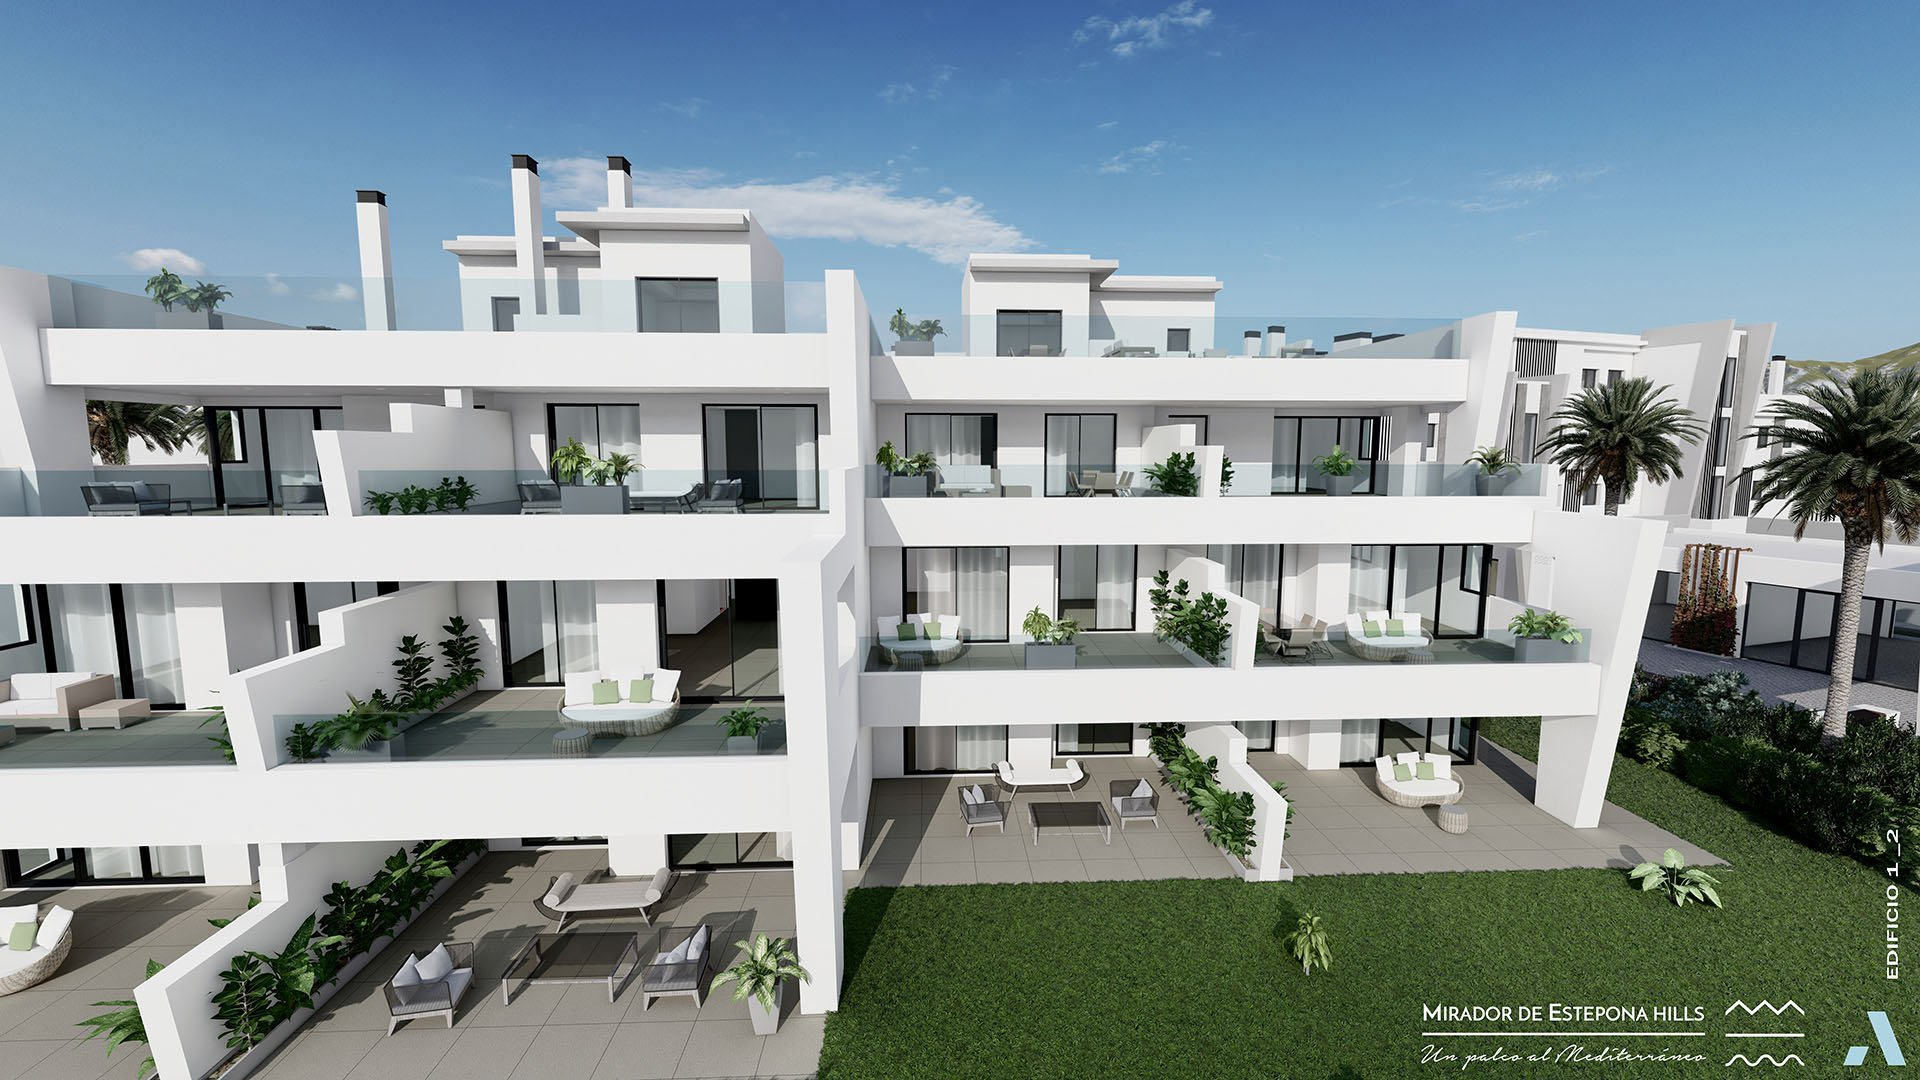 Mirador de Estepona Hills: Apartments next to Estepona